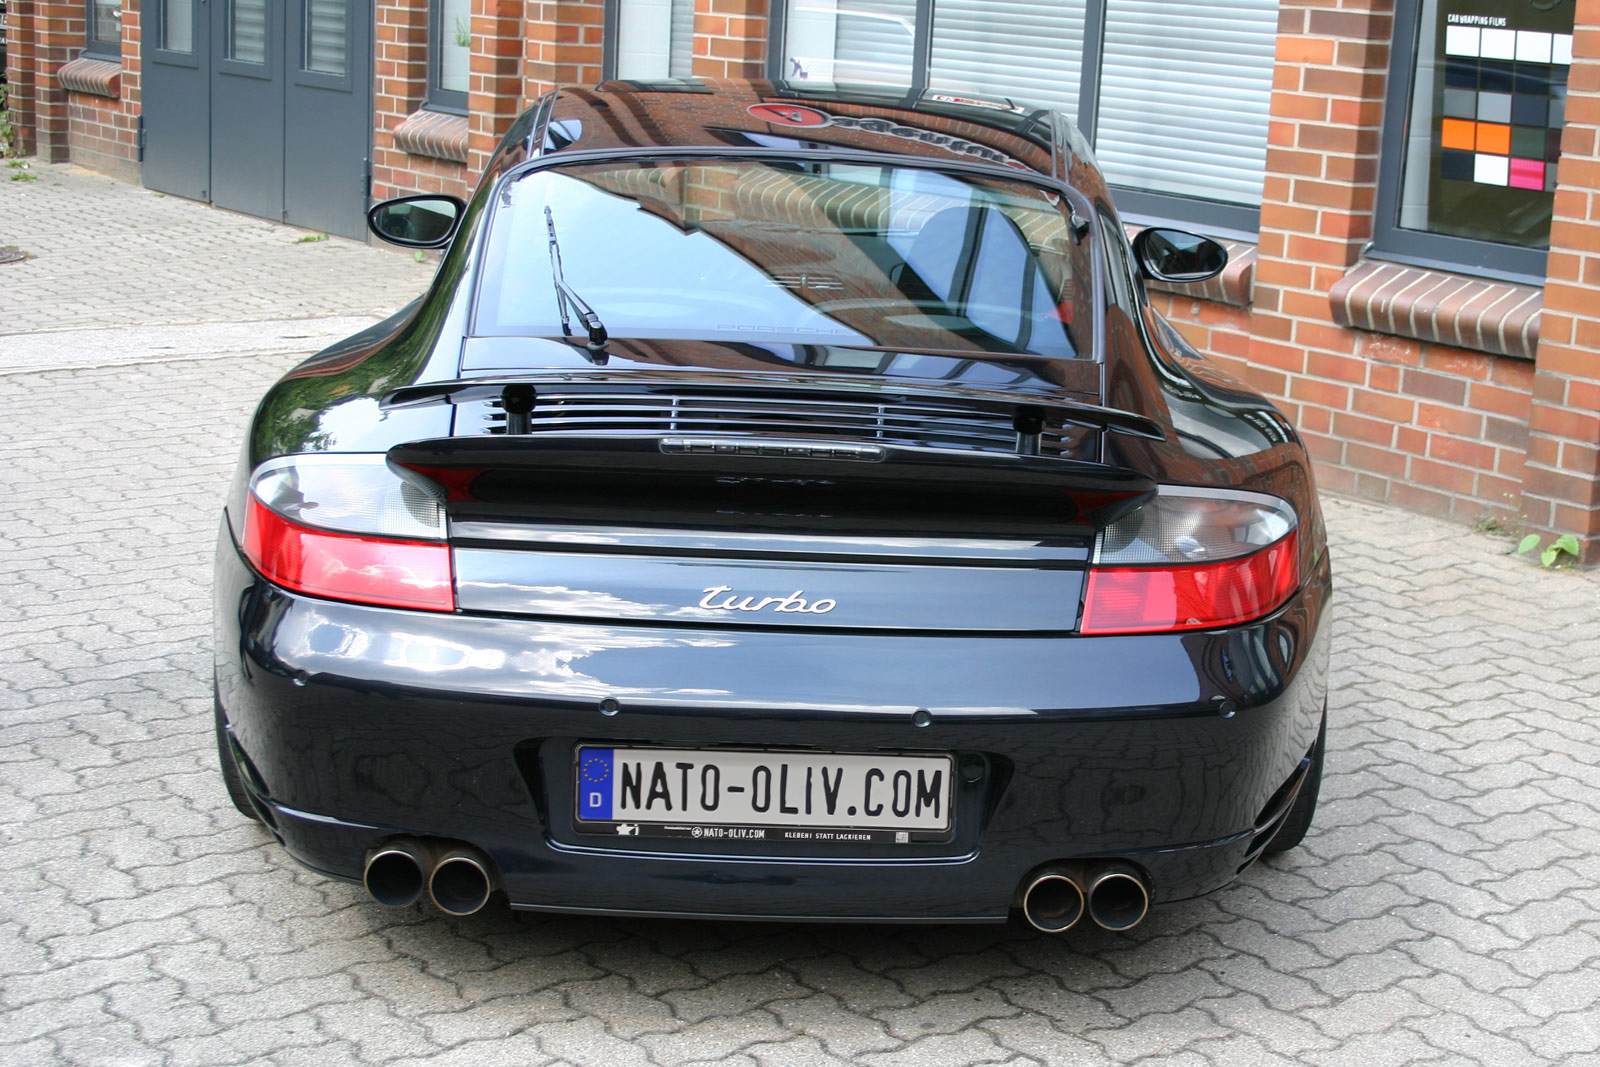 PORSCHE_TURBO_FOLIERUNG_BRAUN_MATT_01